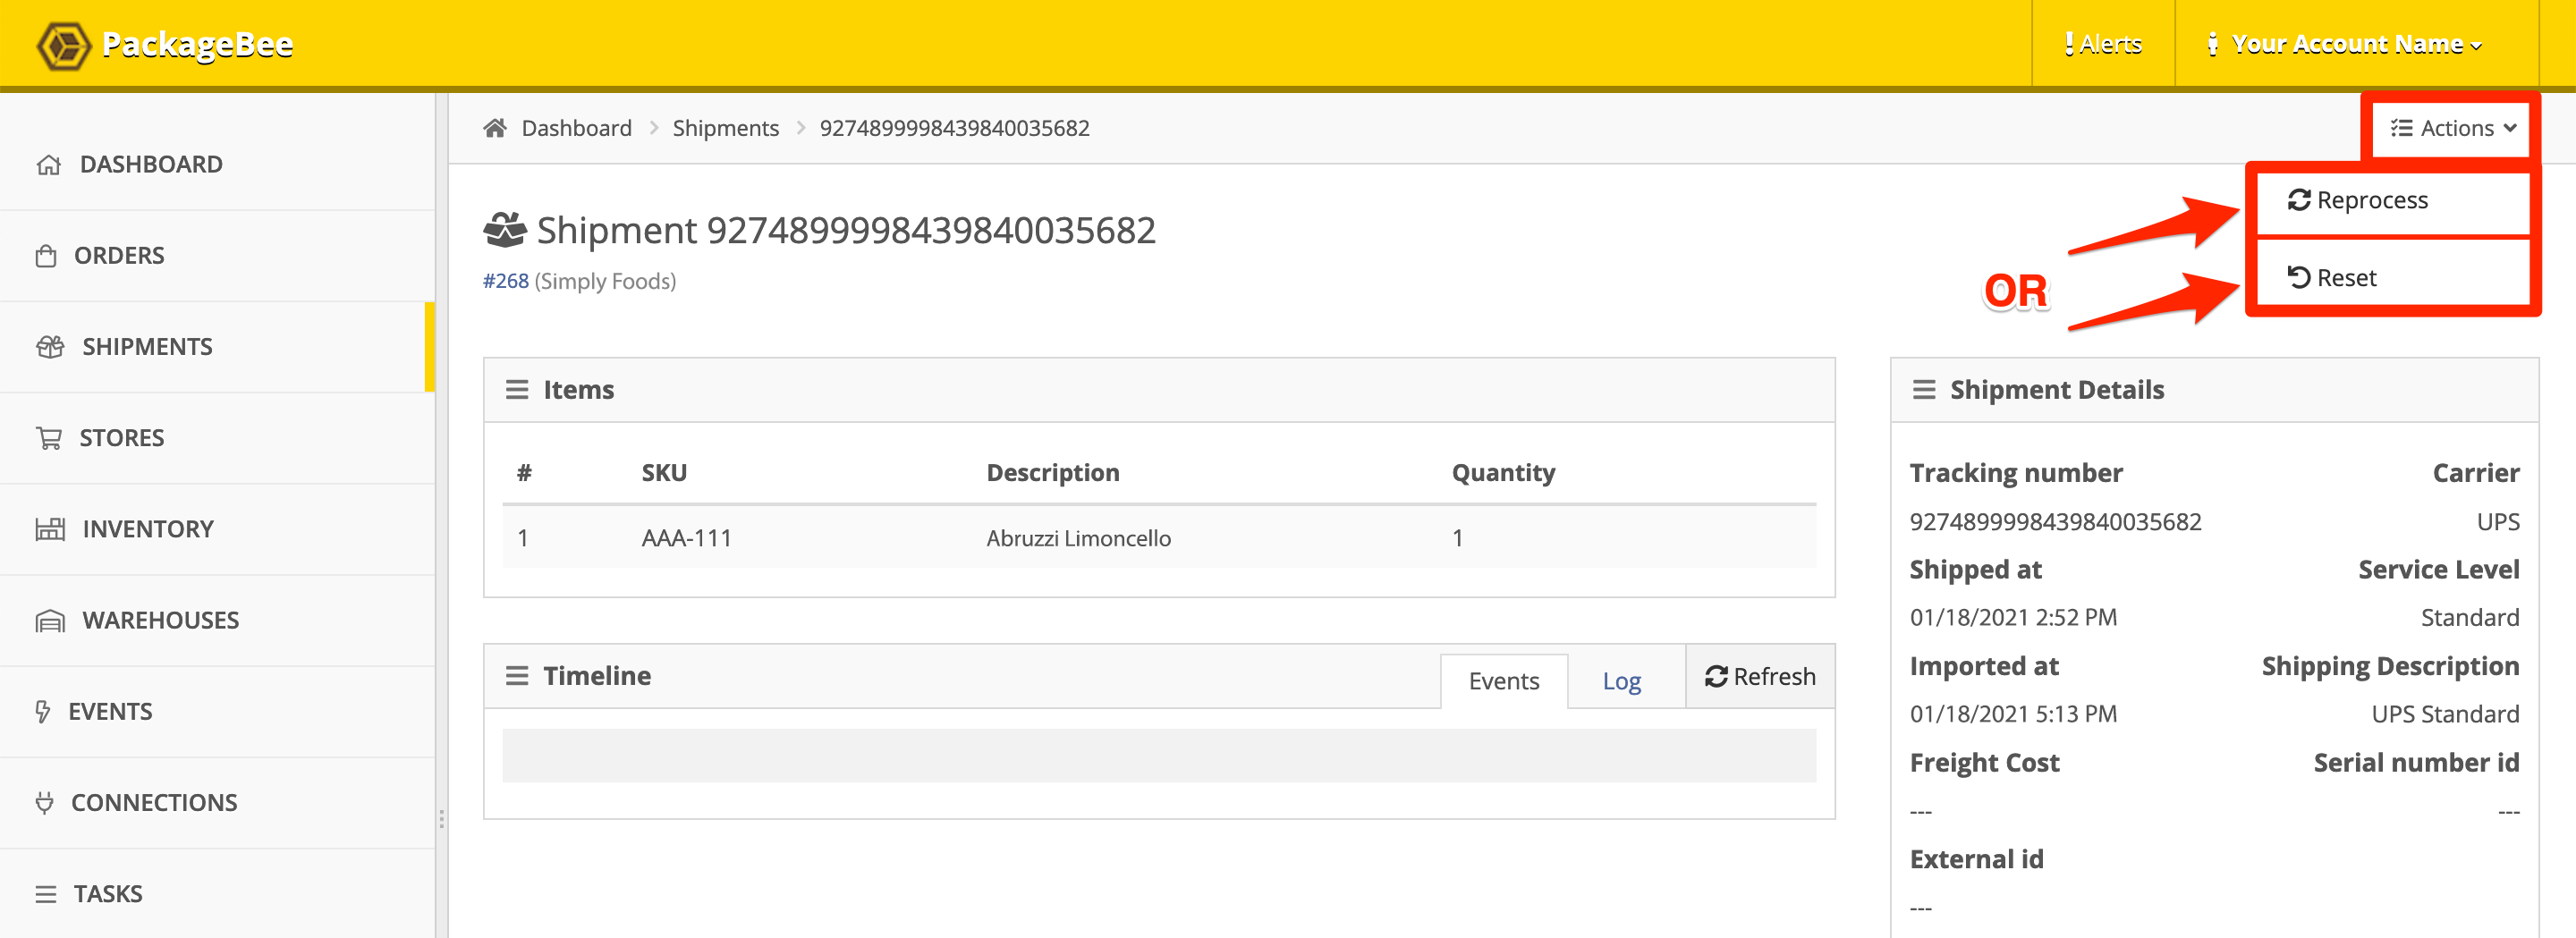 In the Shipment details view, click Actions, then click Reprocess or Reset to perform that action on the Shipment.